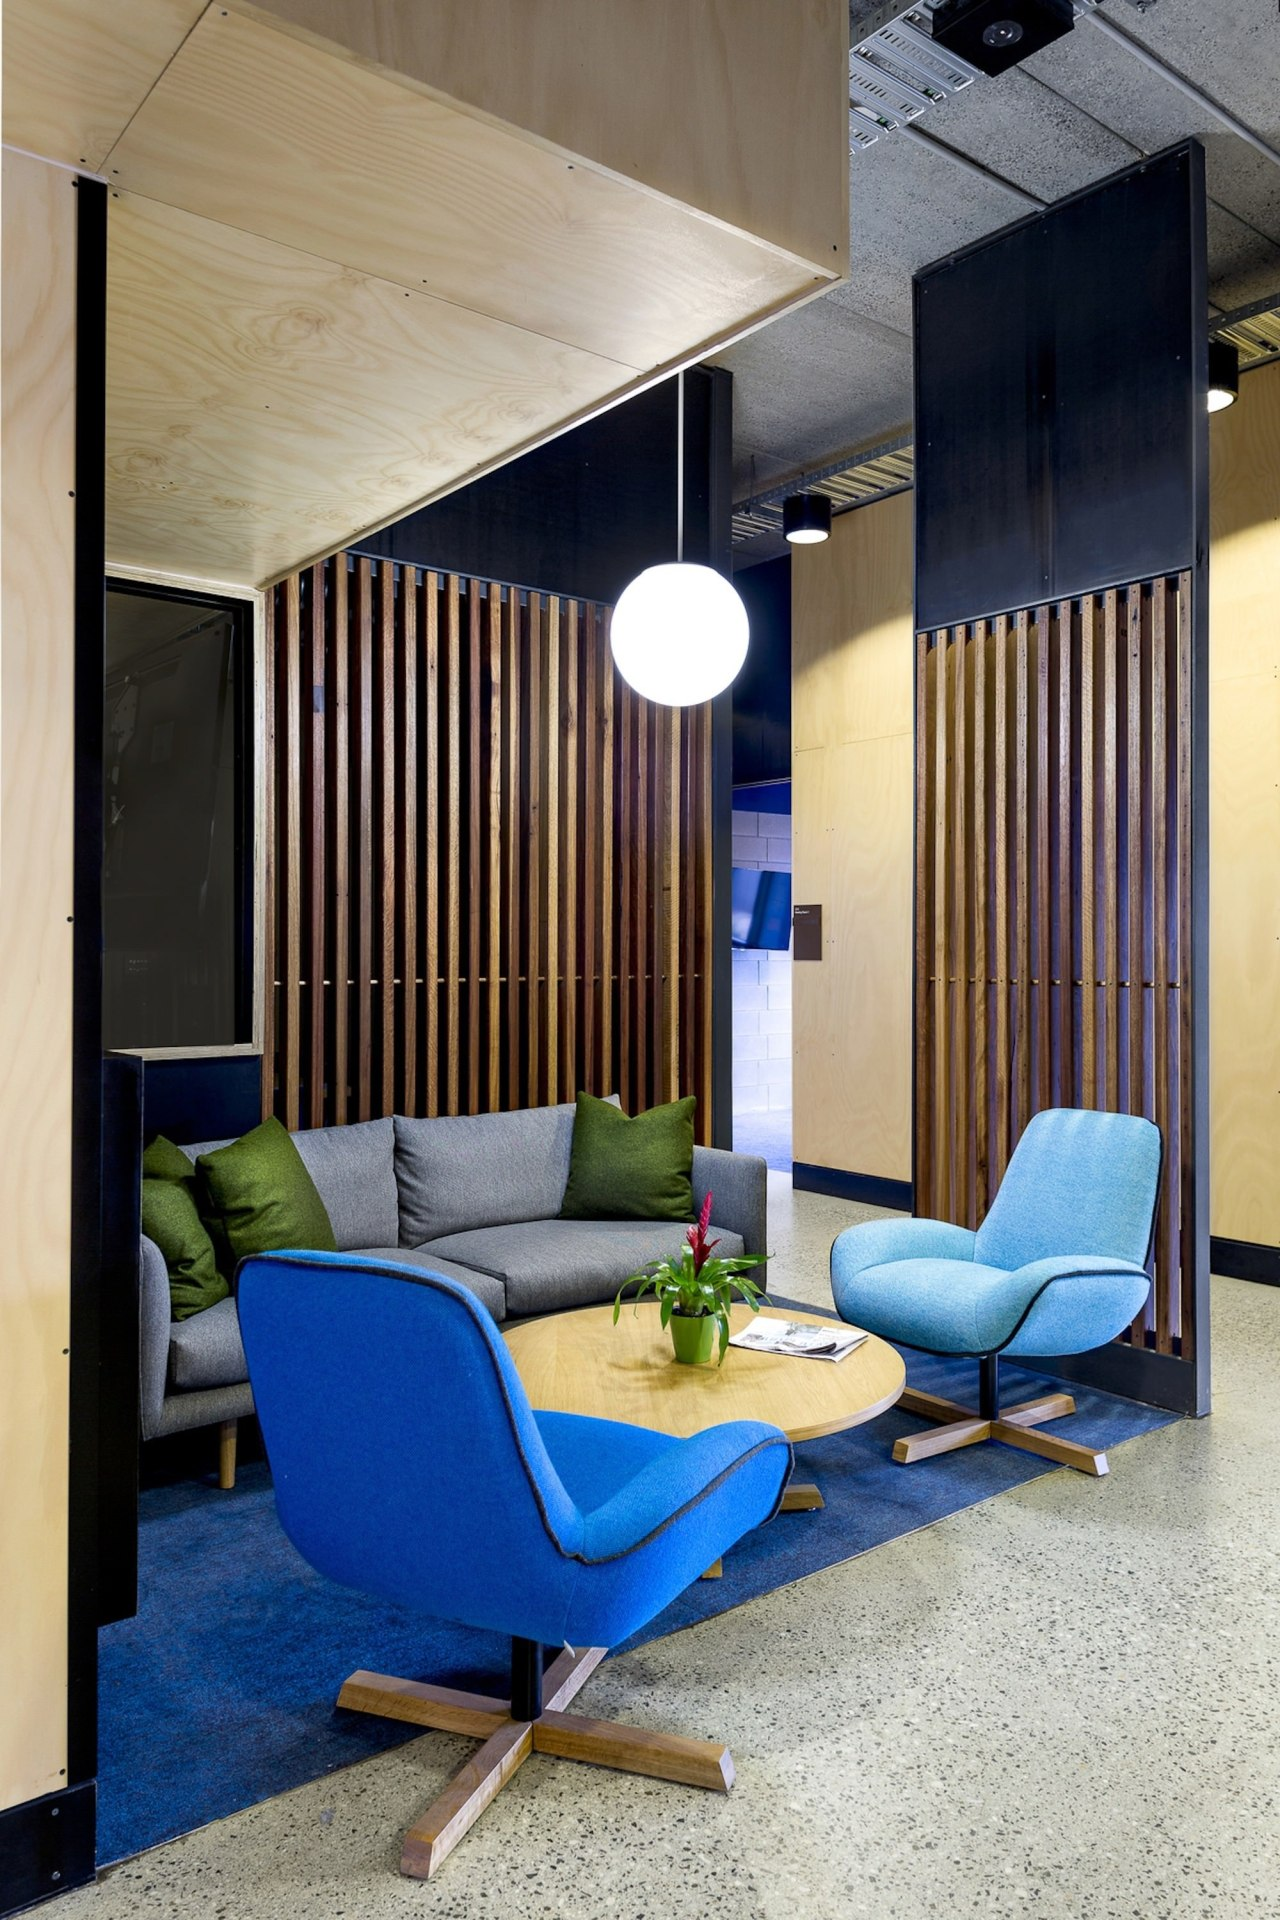 Impromptu meeting areas make this building perfect for architecture, ceiling, chair, furniture, house, interior design, living room, lobby, gray